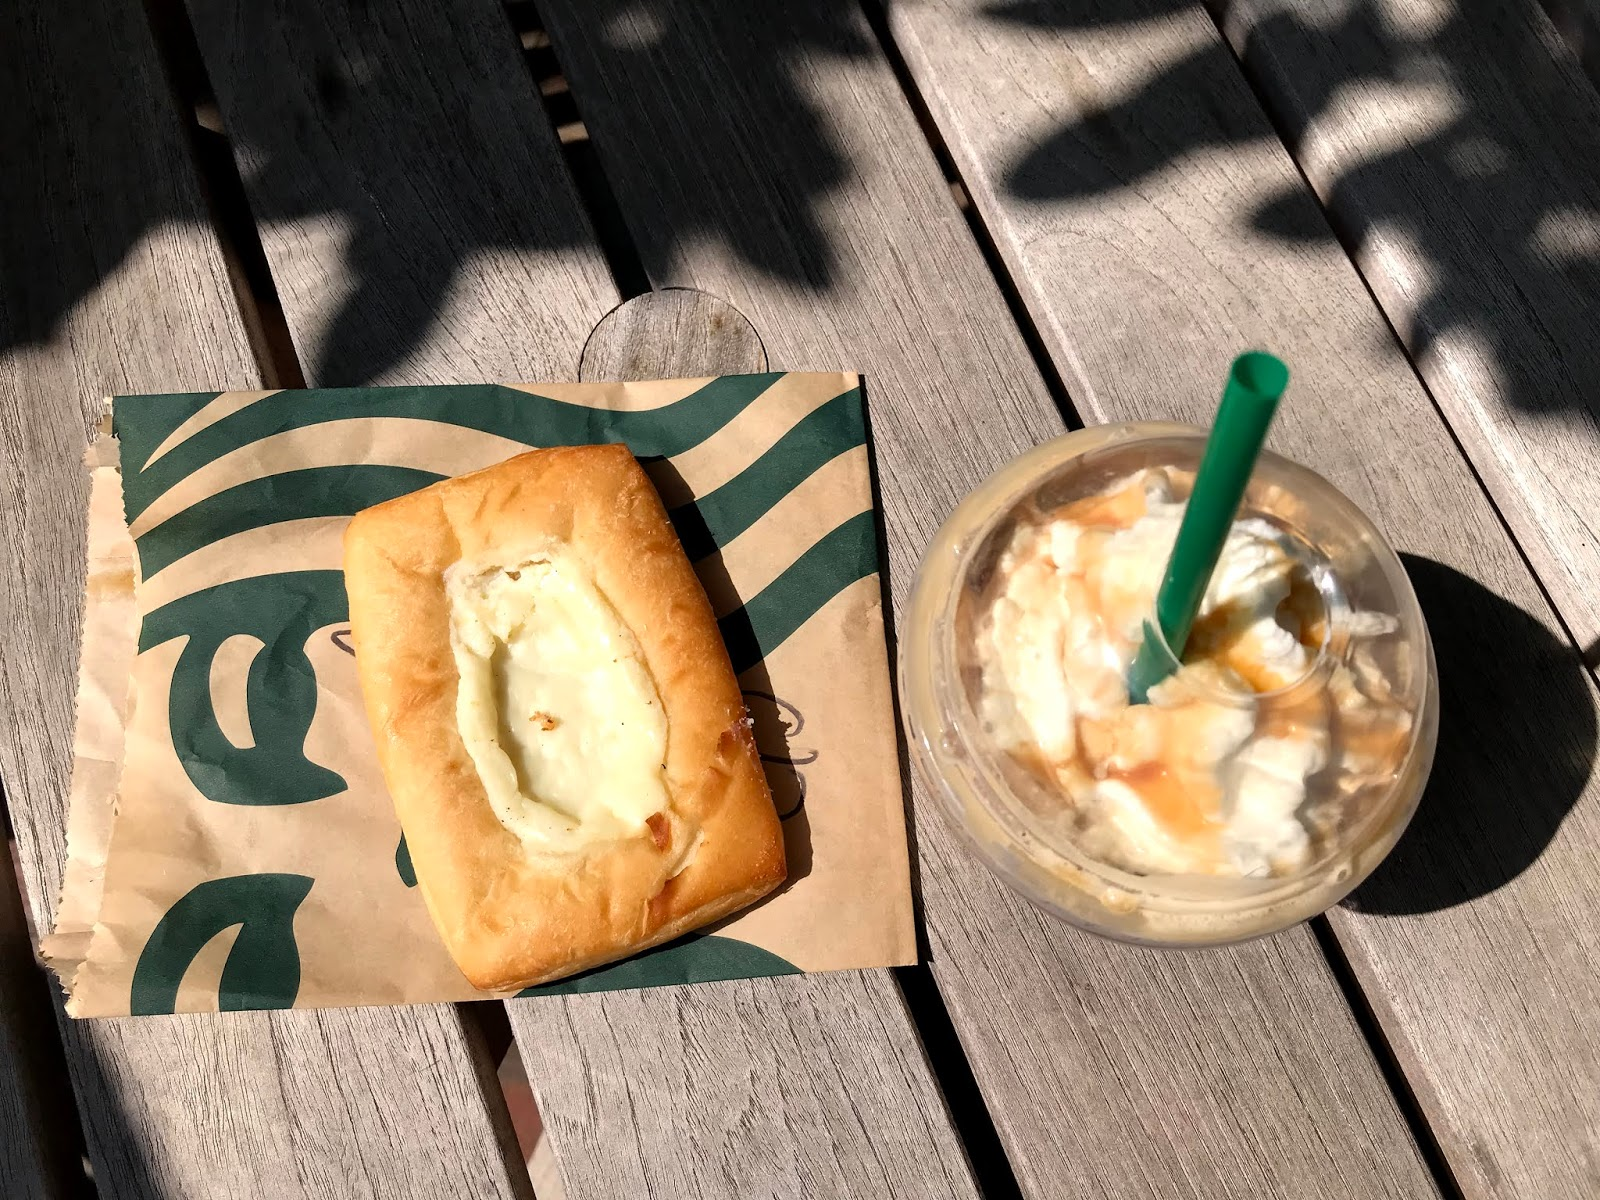 I Am Addicted To The Coffee, Cheese Danishes And Misspelled Names! How Hard Can Carey Be?